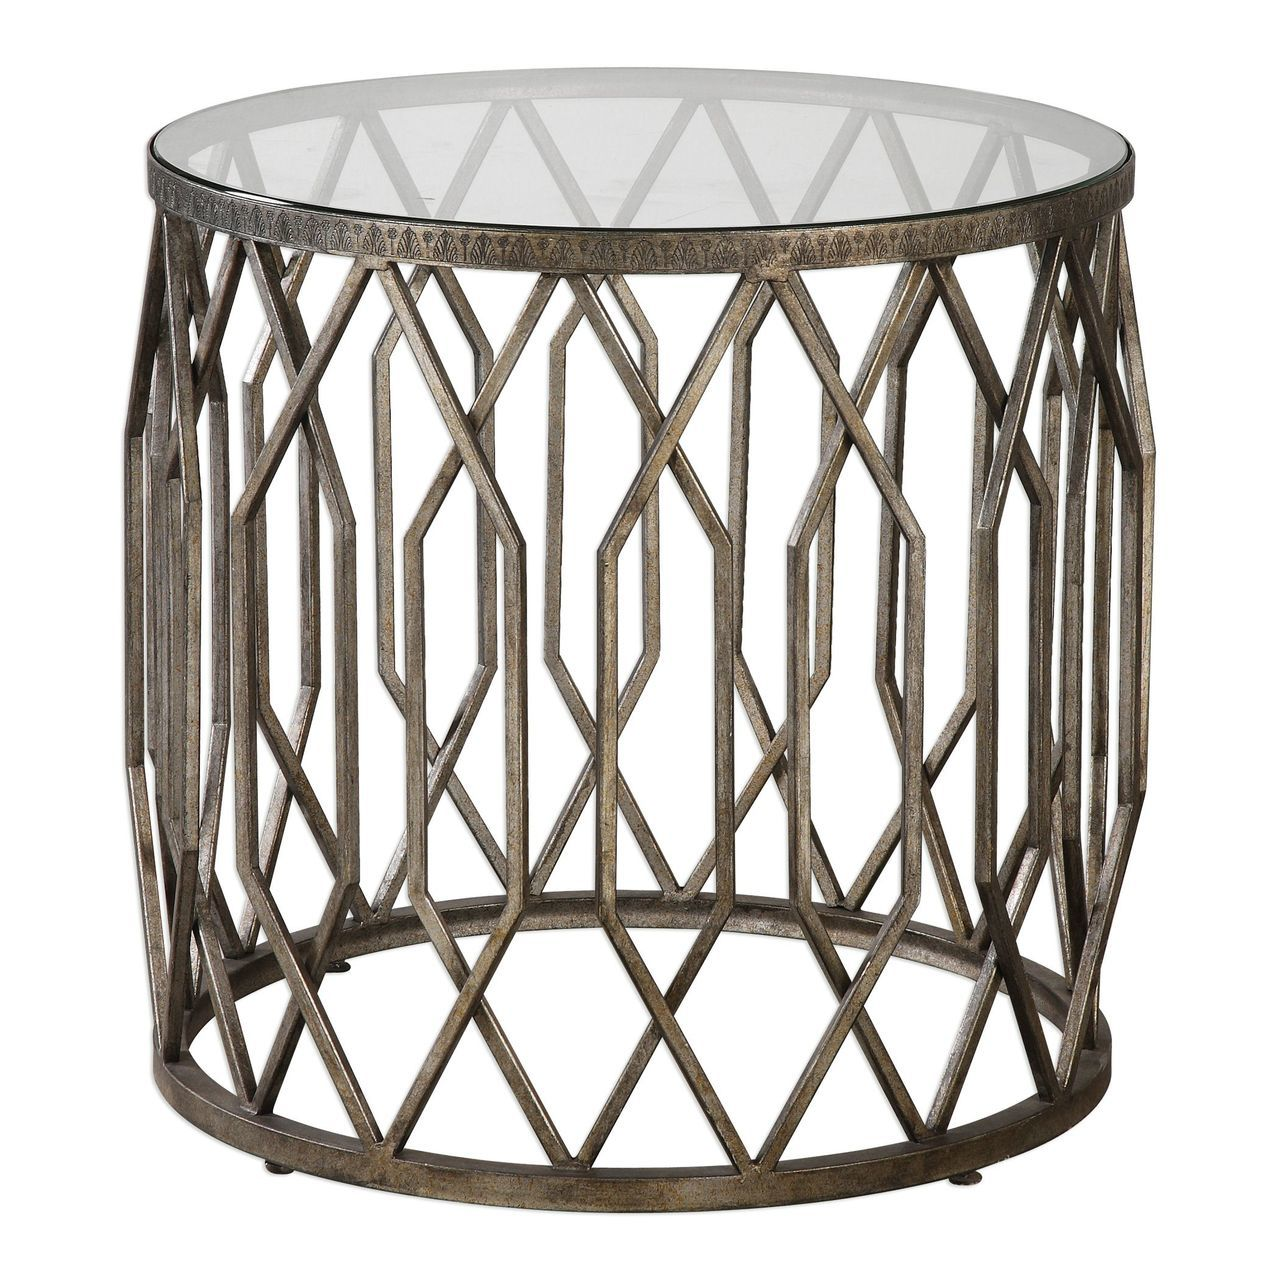 open silver fretwork drum accent table round end cage tribal mirrored pyramid barn door tures stained glass pendant light wooden frog instrument garden west elm mirror black side